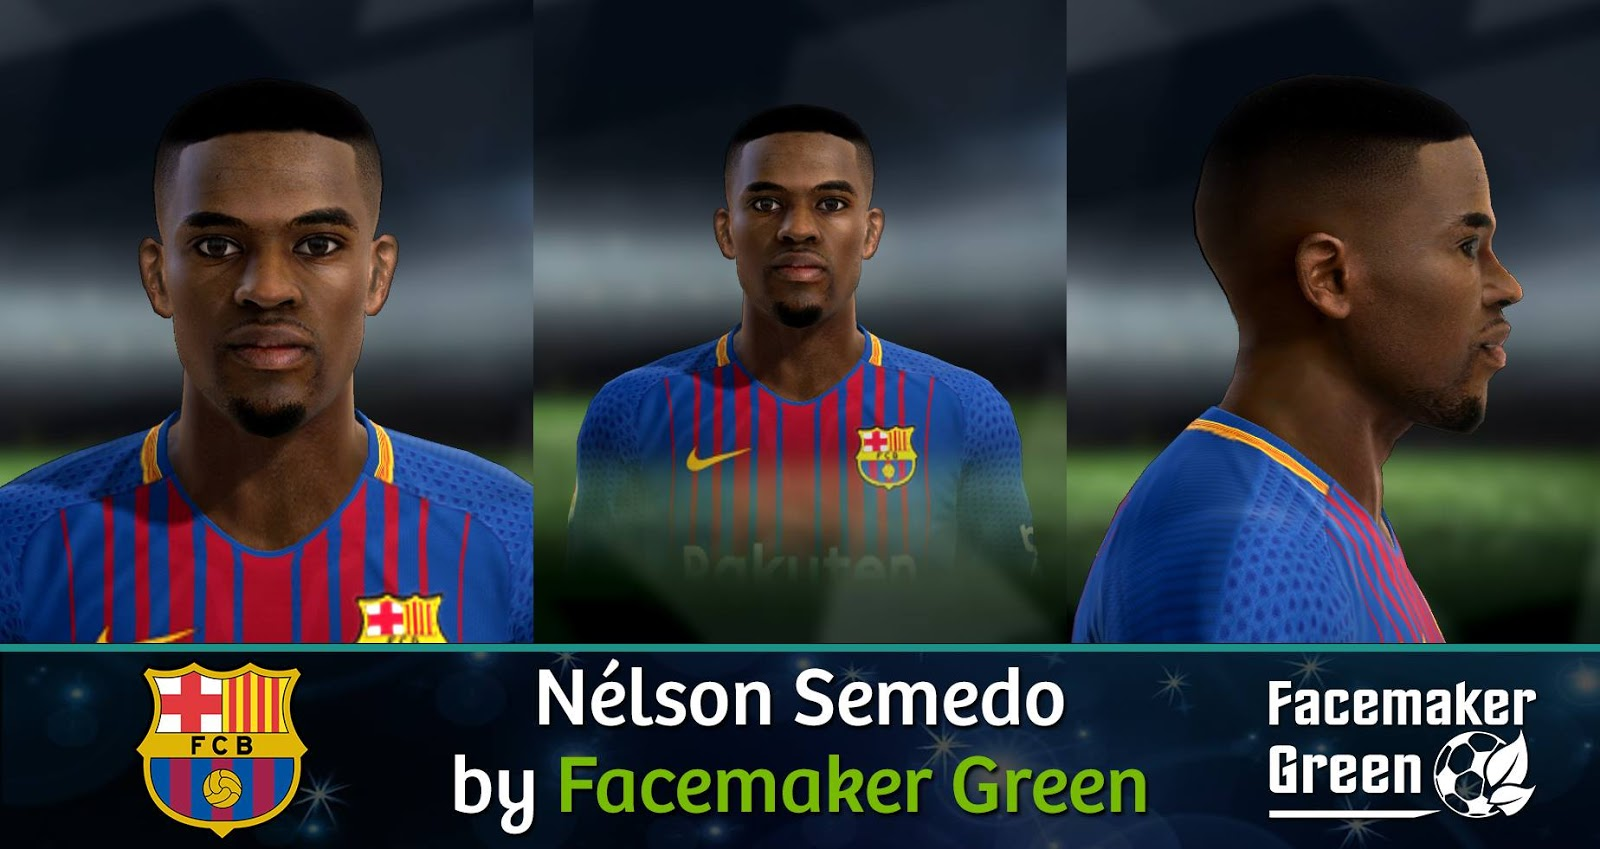 PES 2013 Nélson Semedo (Barcelona) Face by Facemaker Green